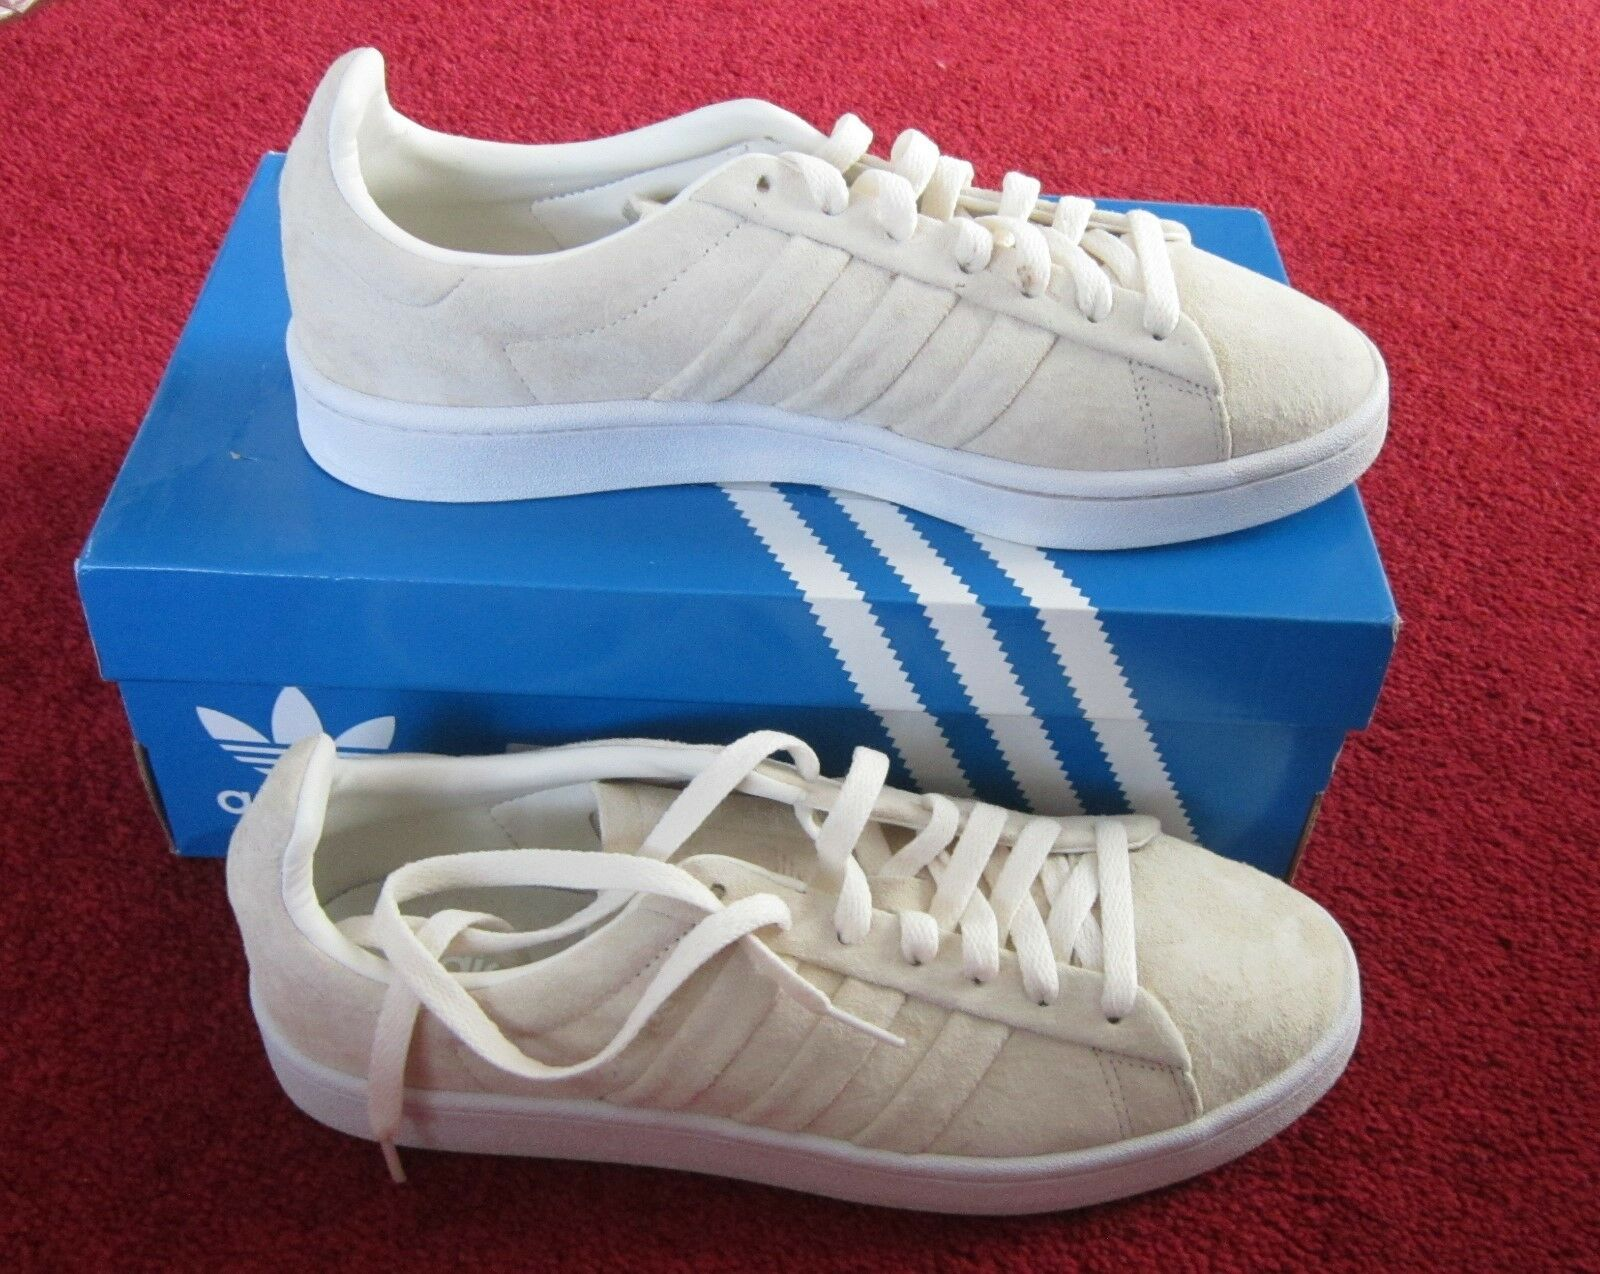 New In Box Adidas Campus Stitch and Turn shoes Men's Trainers U.K Size 7.5